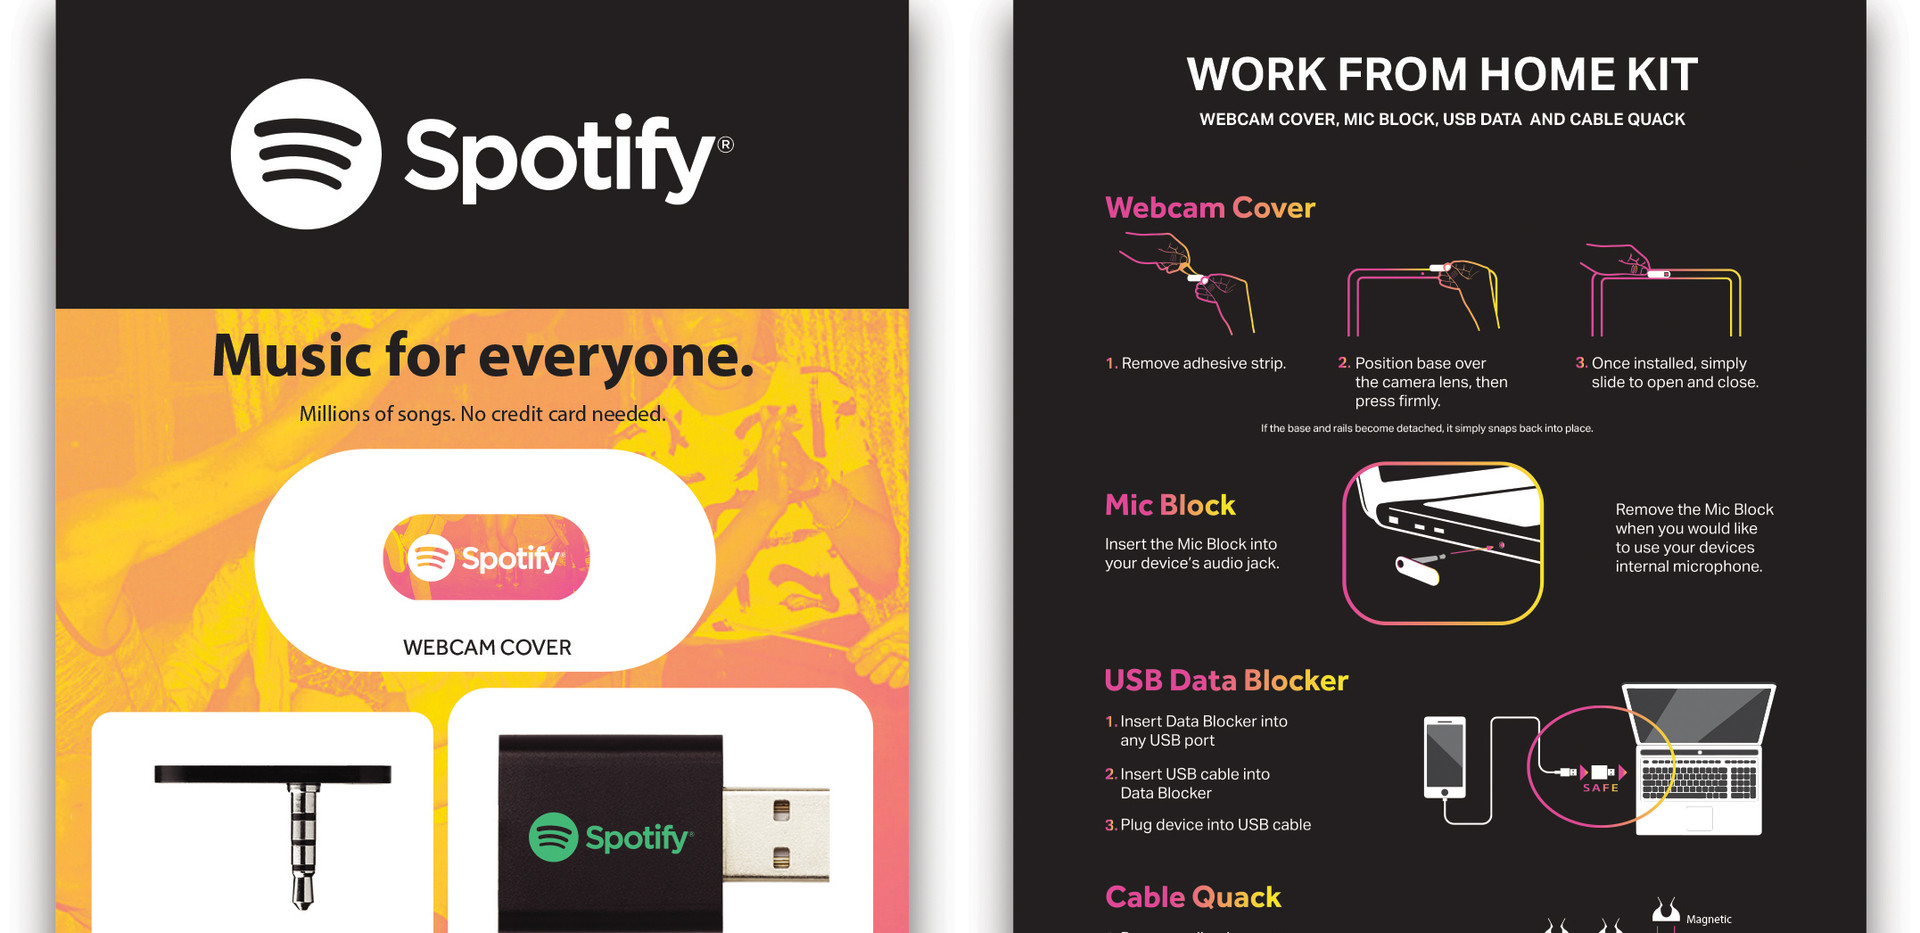 Spotify WFHK 4P custom packaging 2.jpg